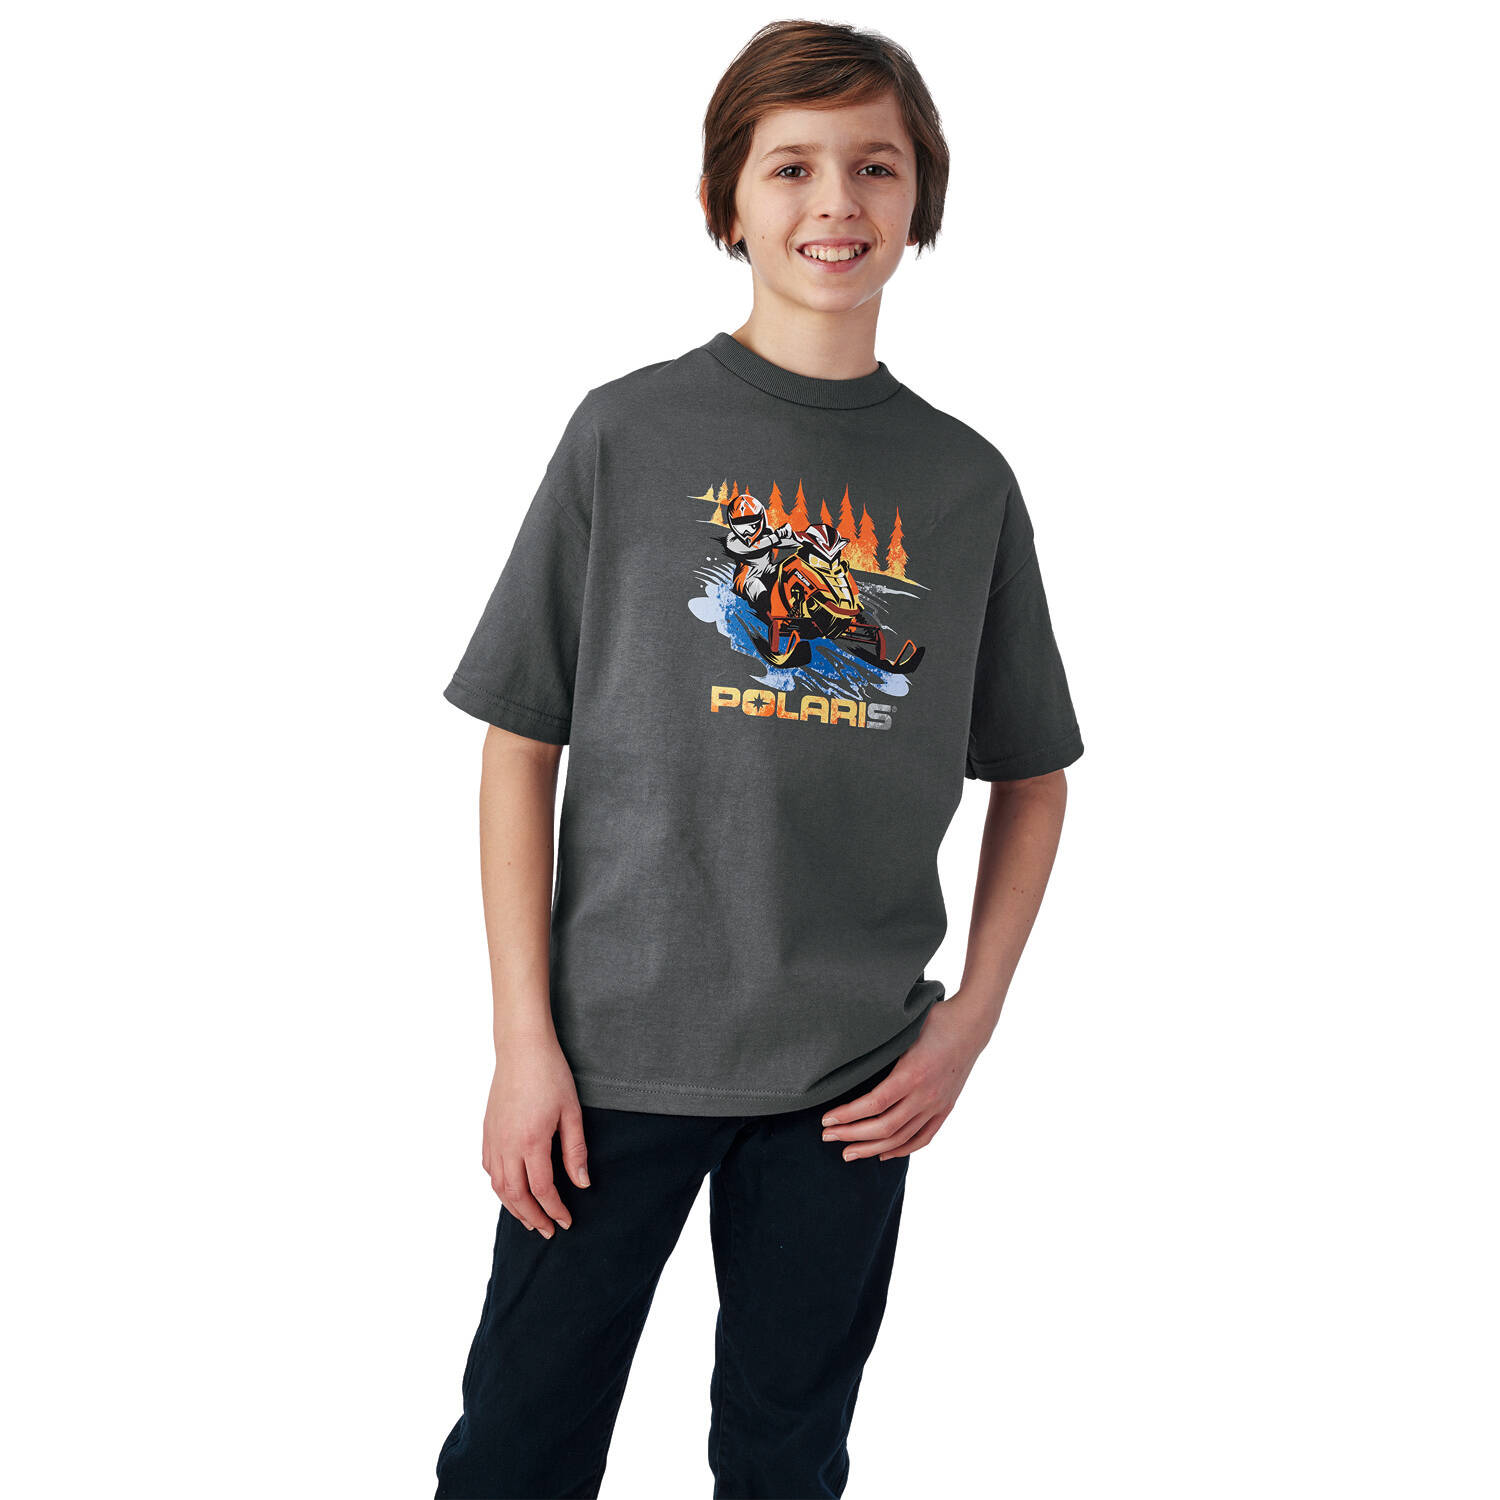 Youth Sled Graphic T-Shirt with Polaris® Logo, Gray